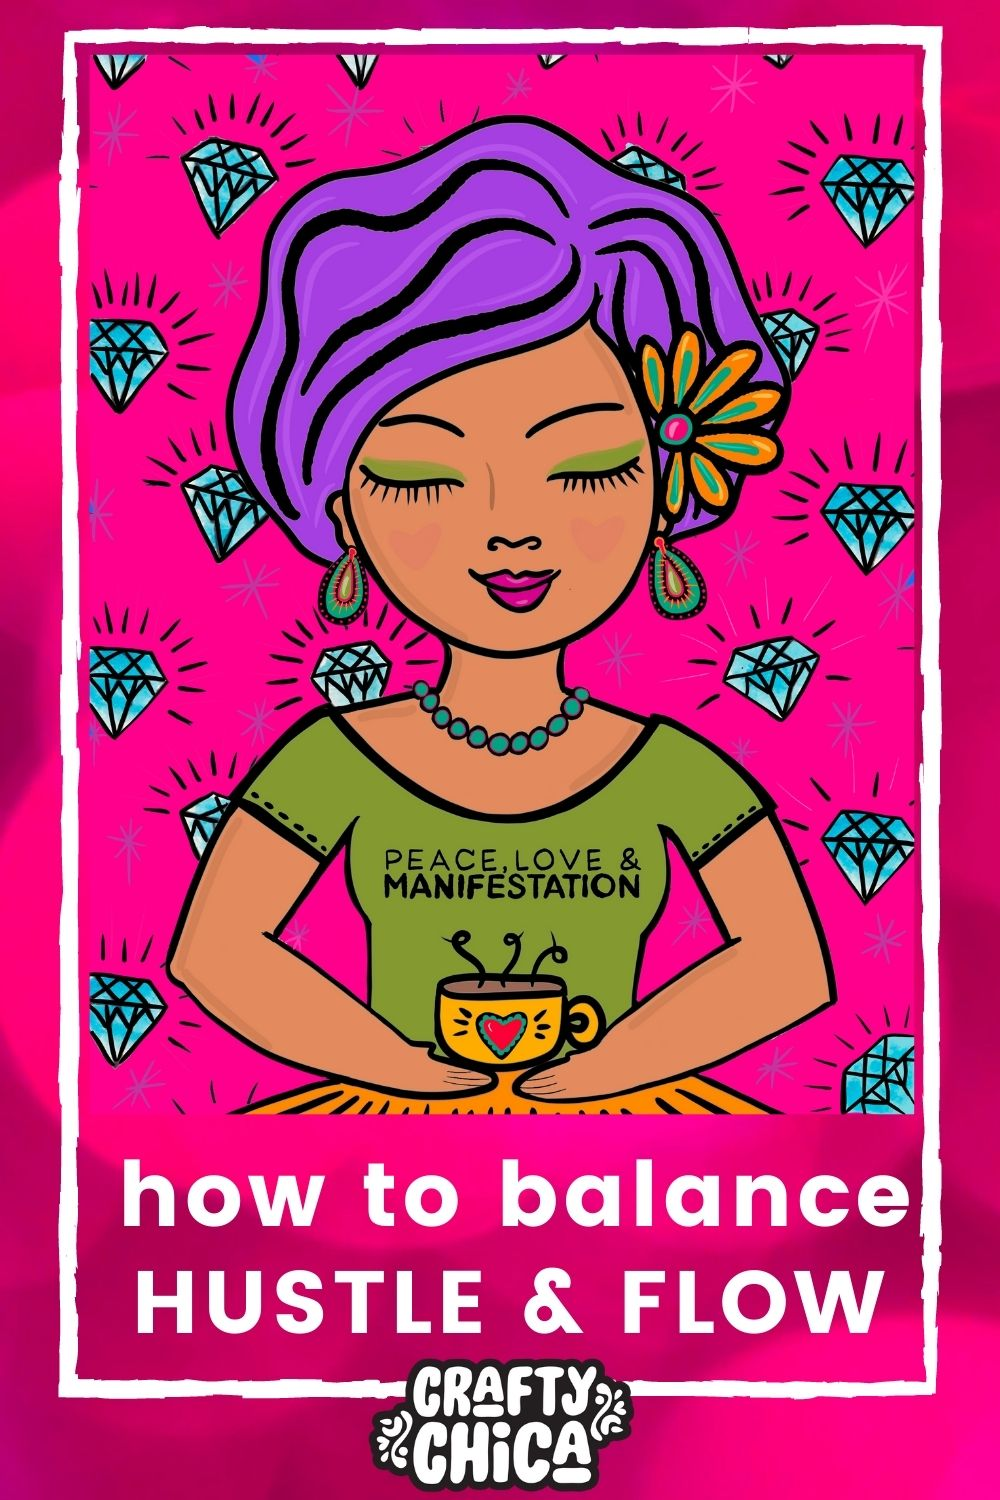 Finding the balance between hustle and flow #craftychica